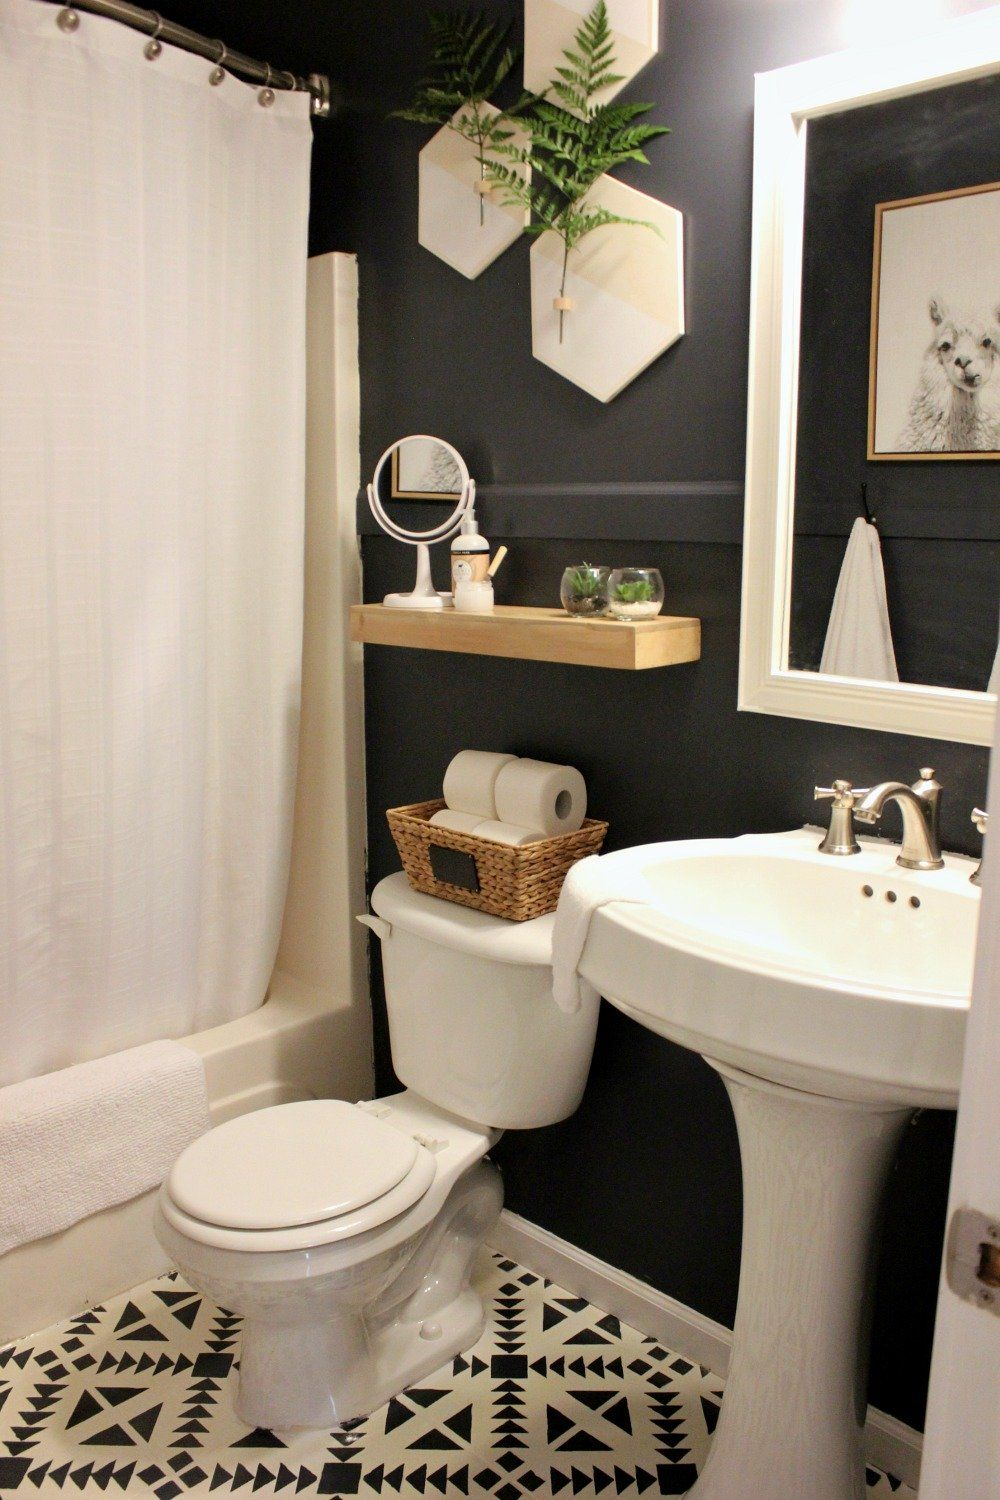 Small Bathroom Remodel Reveal  Small Guest Bathrooms Eclectic Magnificent Updating A Small Bathroom On A Budget Inspiration Design